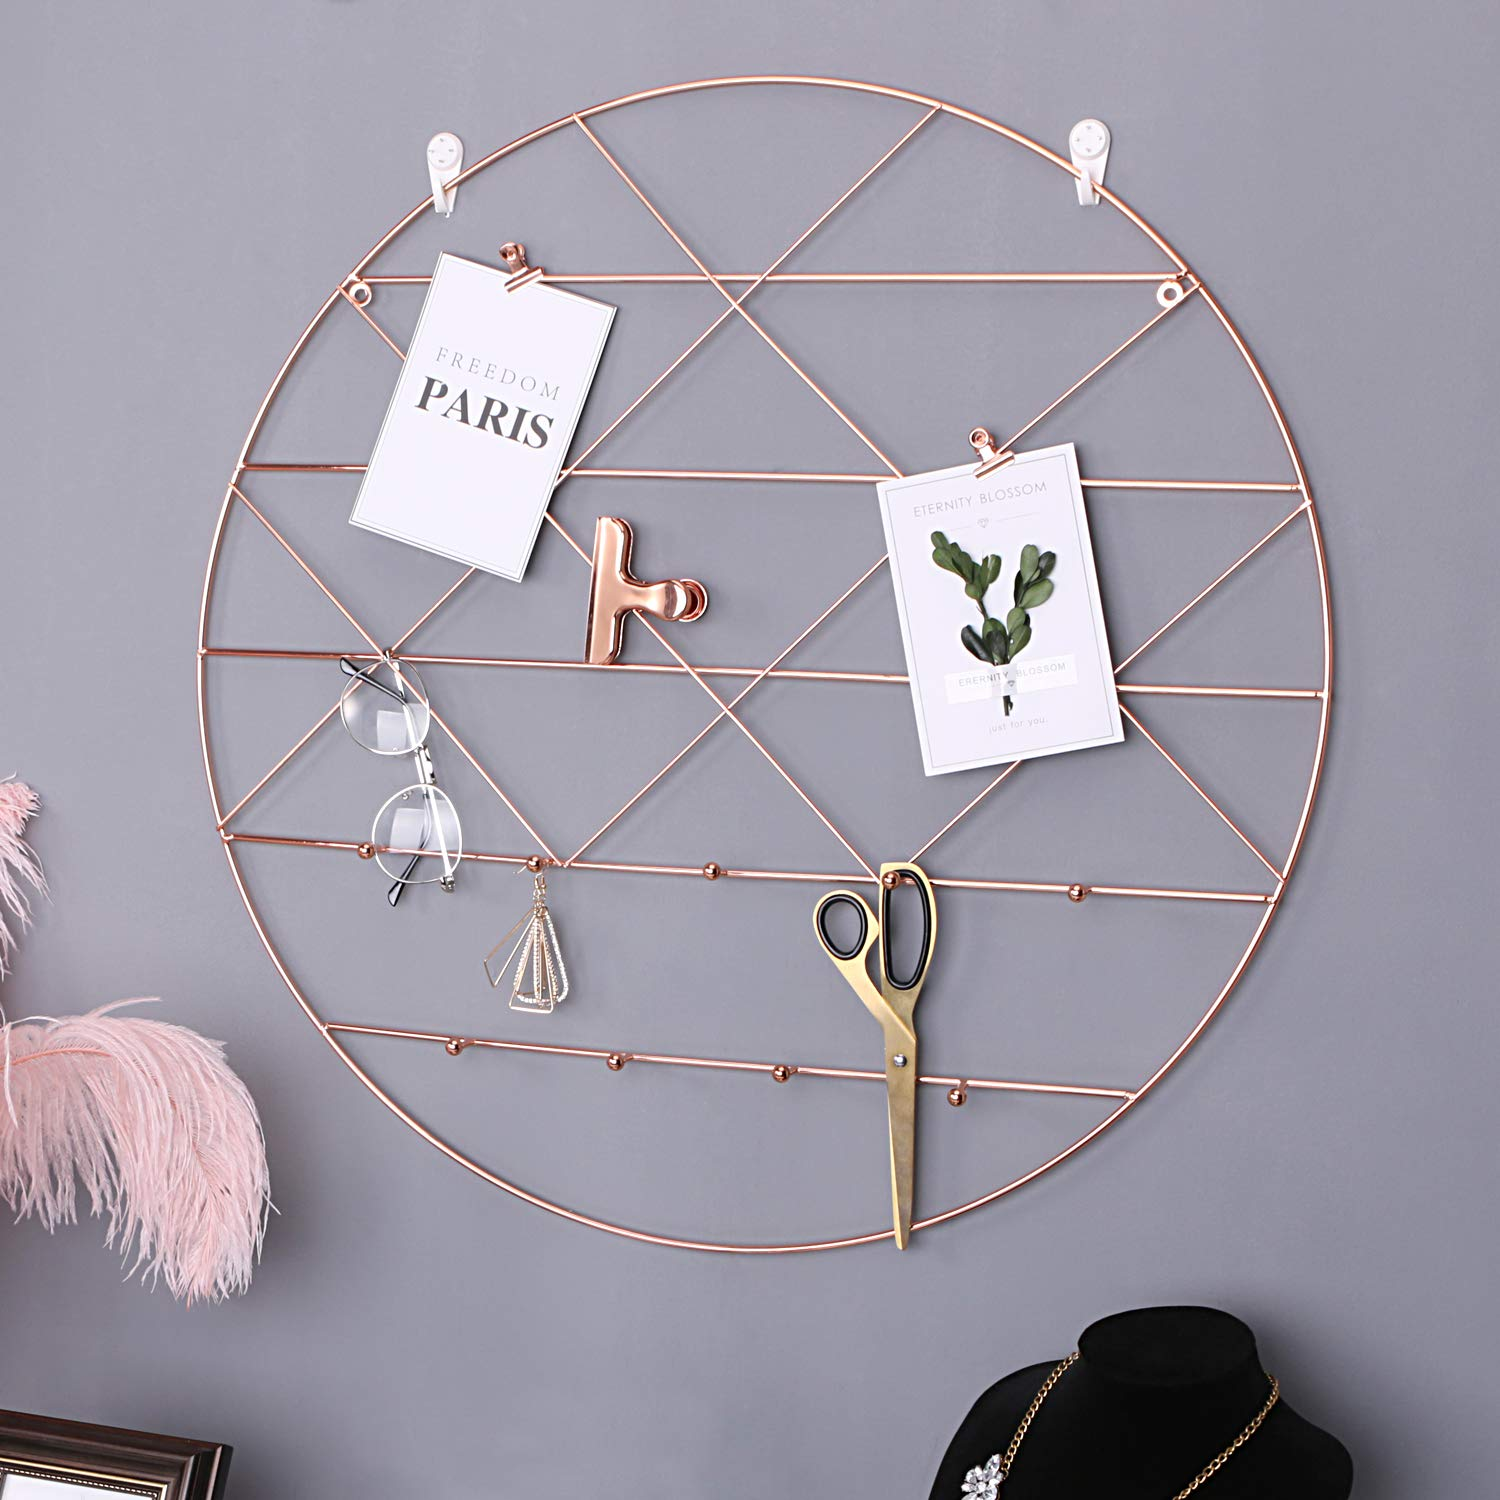 Simmer Stone Round Wall Grid Panel for Photo Hanging Display & Wall Decoration Organizer, Multi-Functional Wall Storage Display Grid with Hook, Size 23.6'' x 23.6'', Rose Gold by Simmer Stone